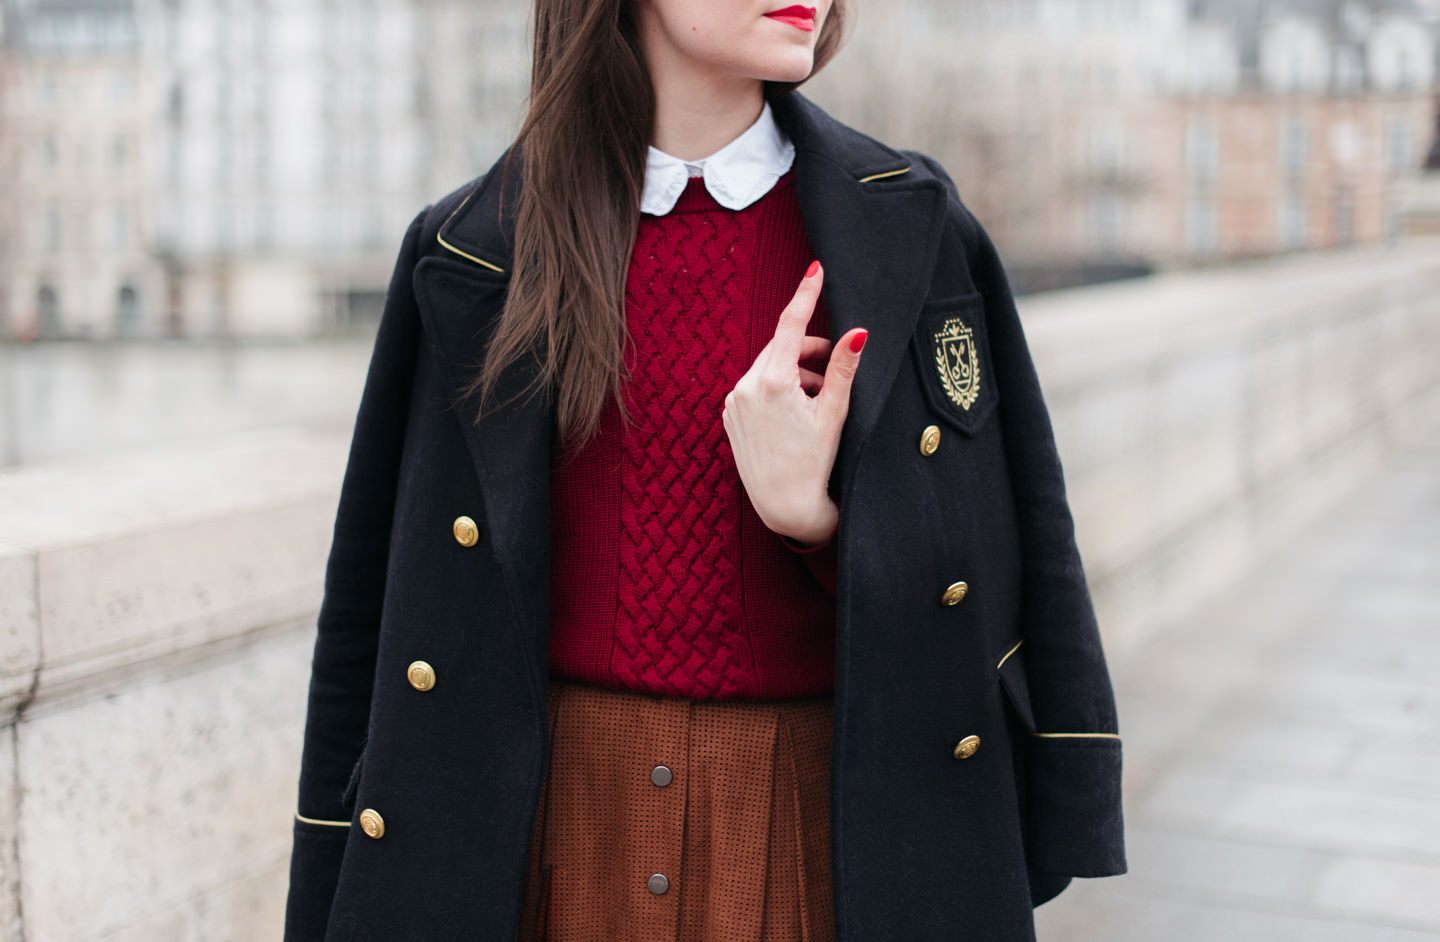 Blog-Mode-And-The-City-Looks-Le-reconfort-des-basiques-2 copie